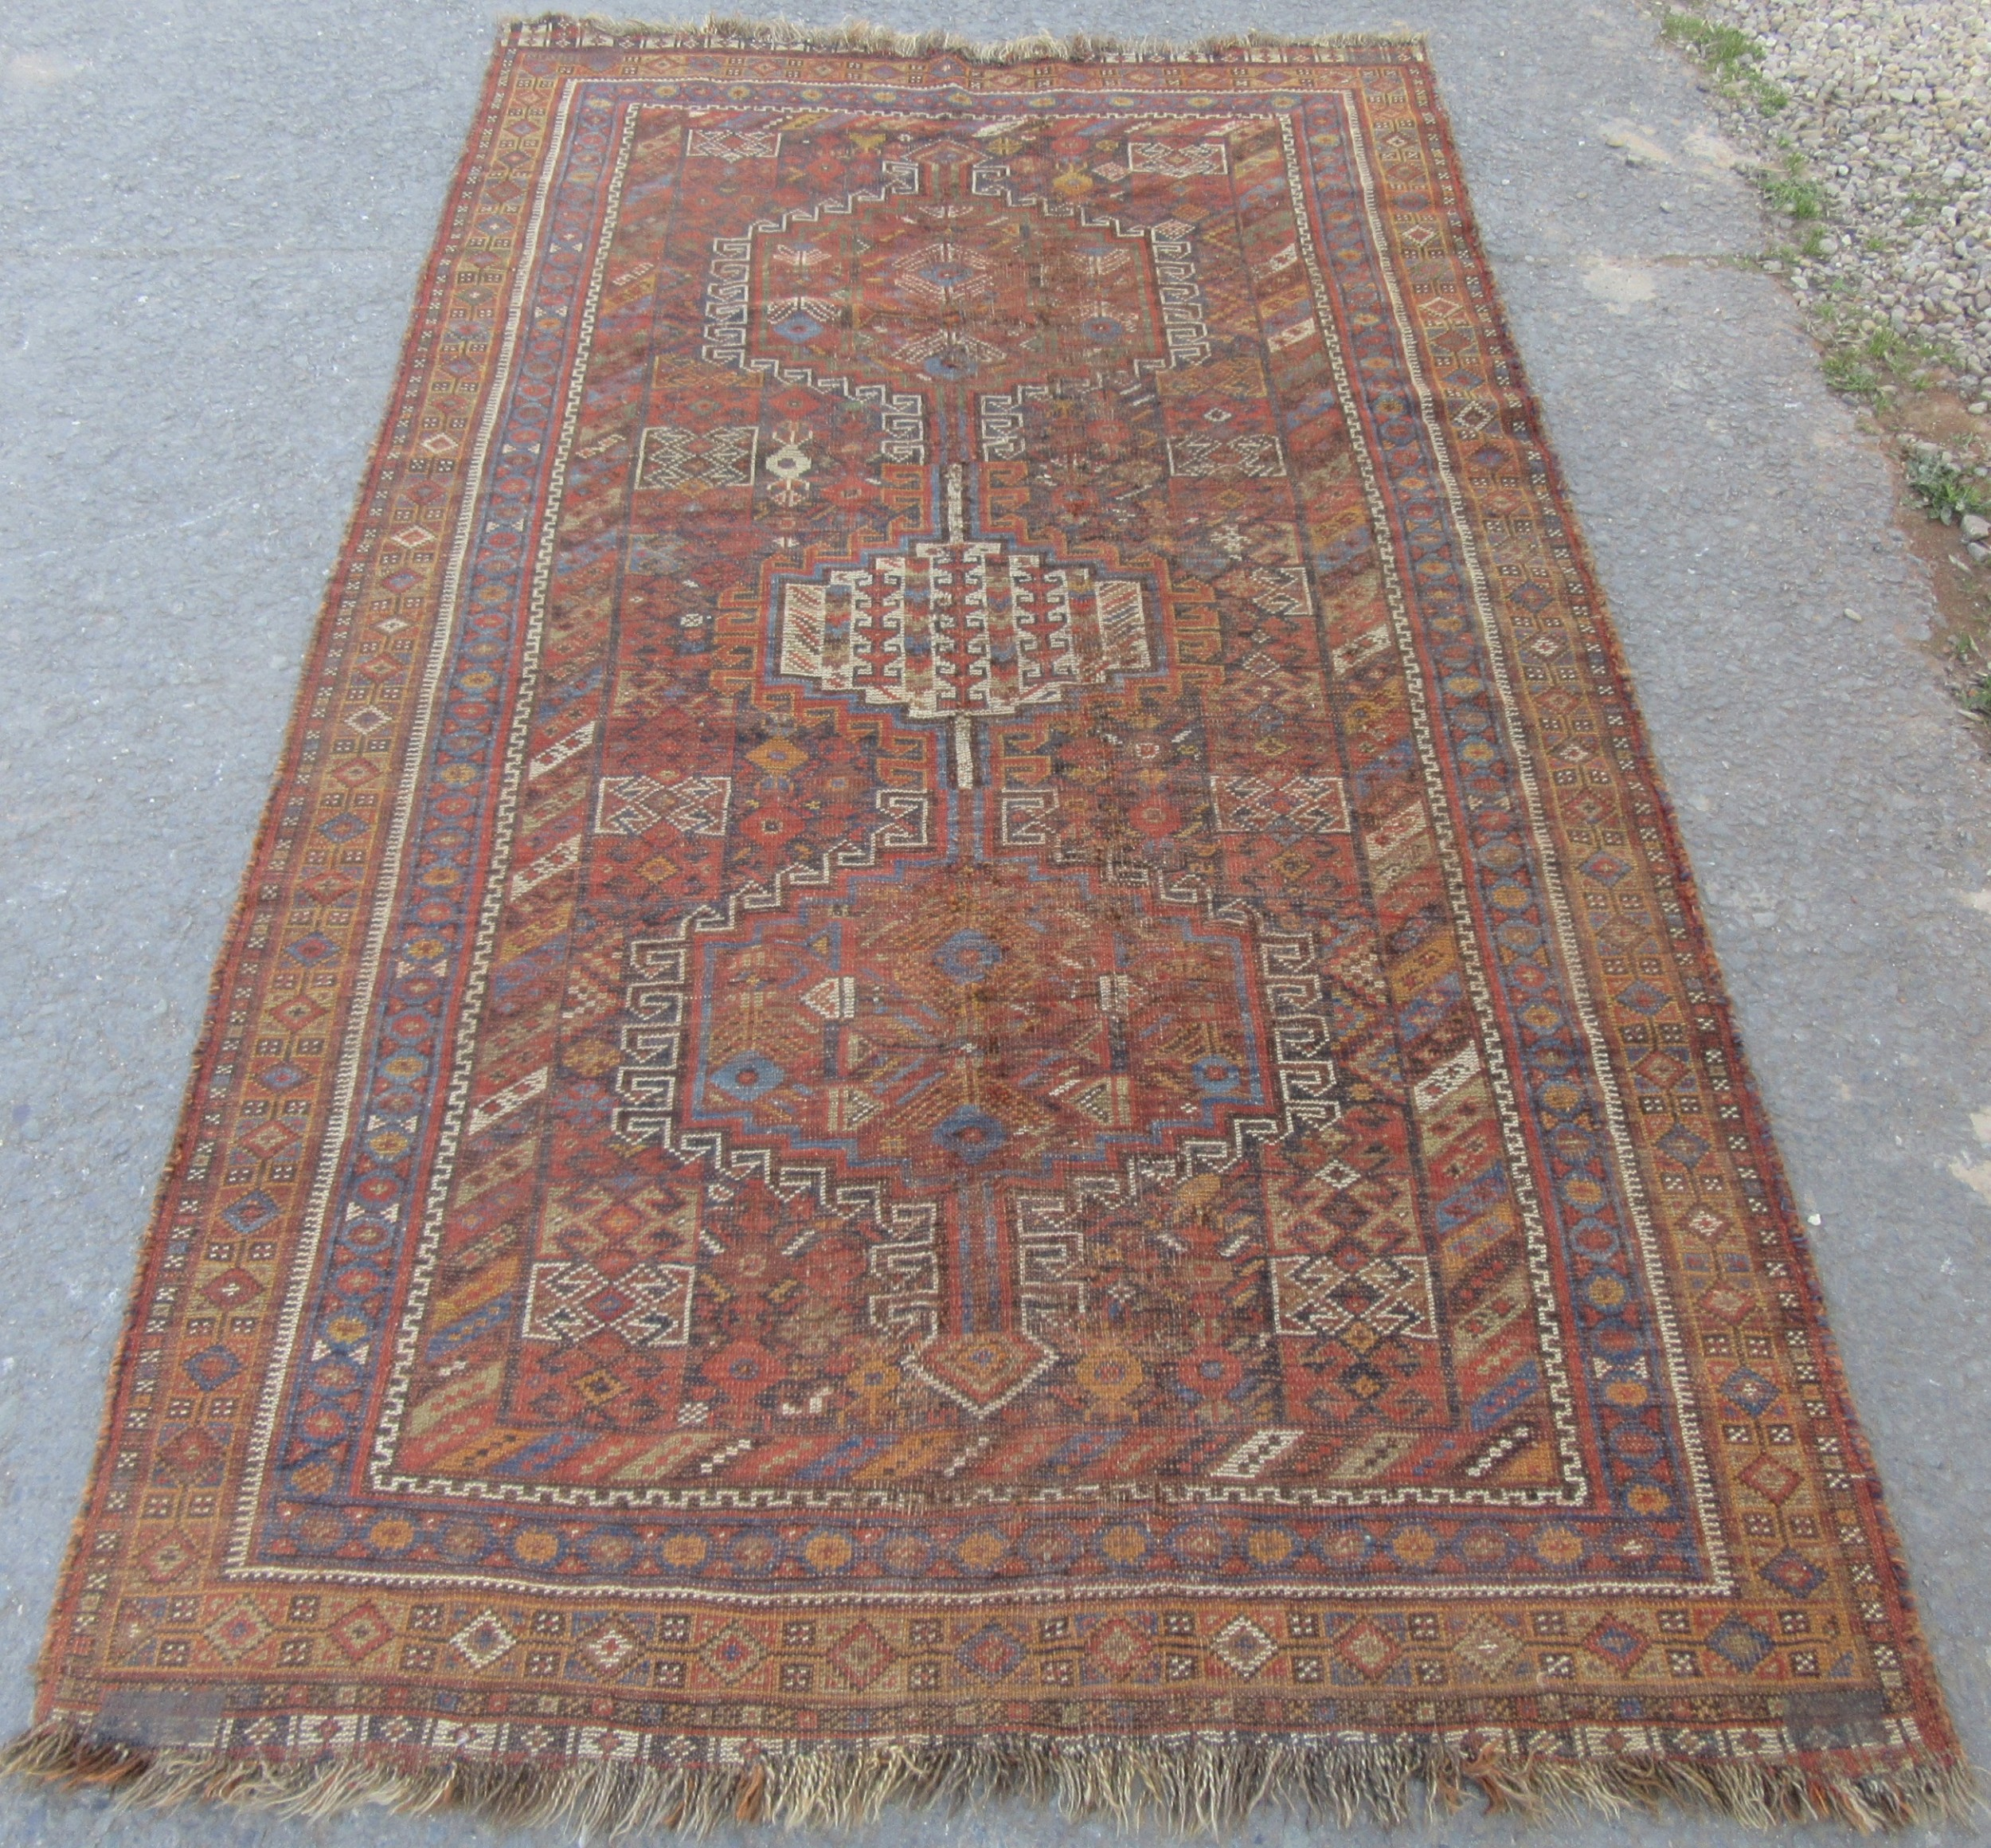 antique country house shabby chic 19th century south west persian arab tribal rug